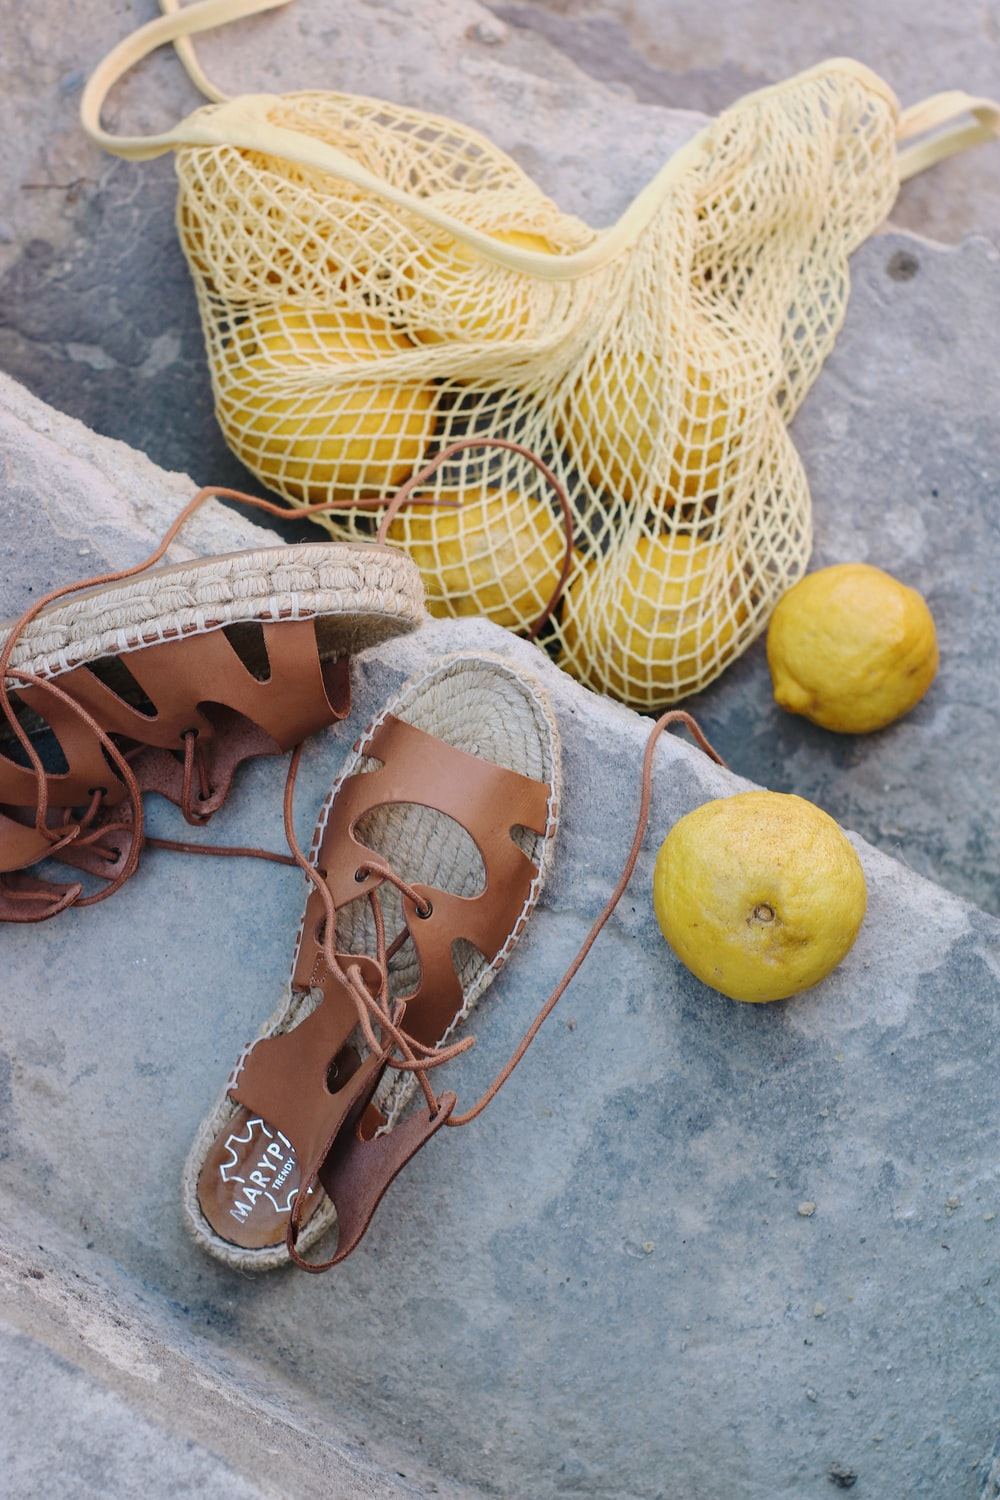 yellow lemon beside brown leather sandals